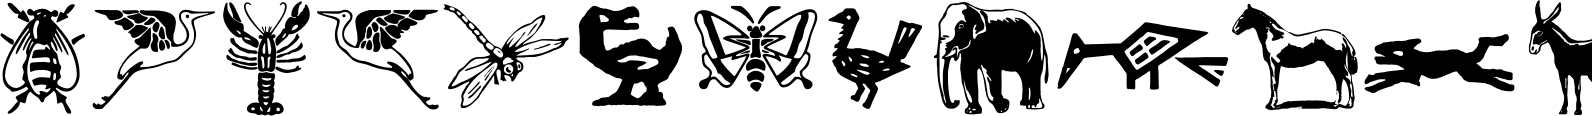 LTC Ornaments Animalia Font